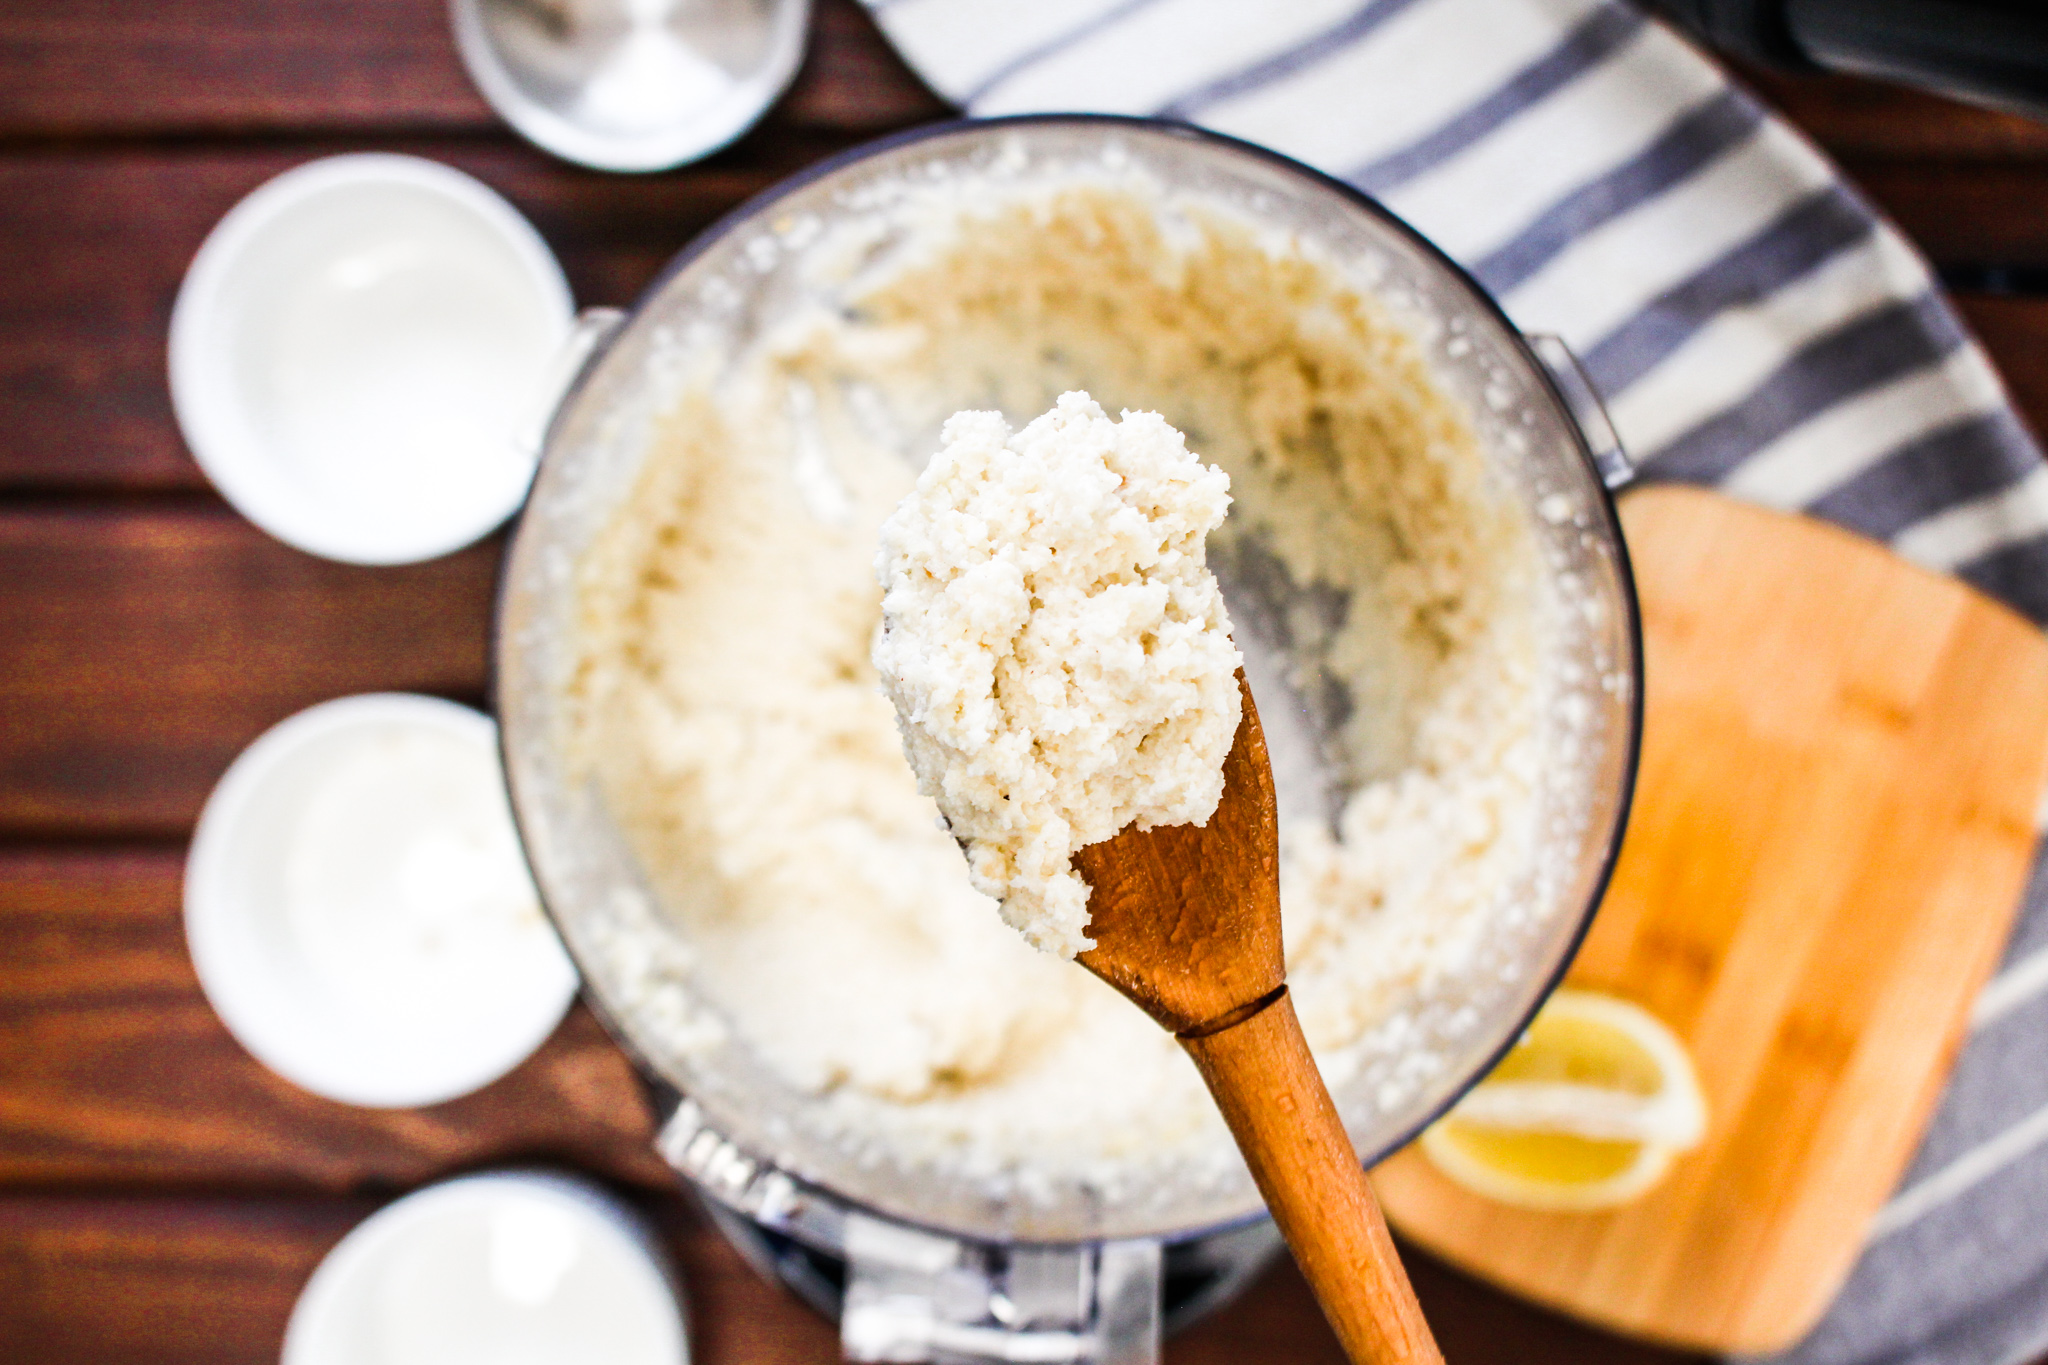 Photo of Macadamia Cauliflower Ricotta on wooden spoon